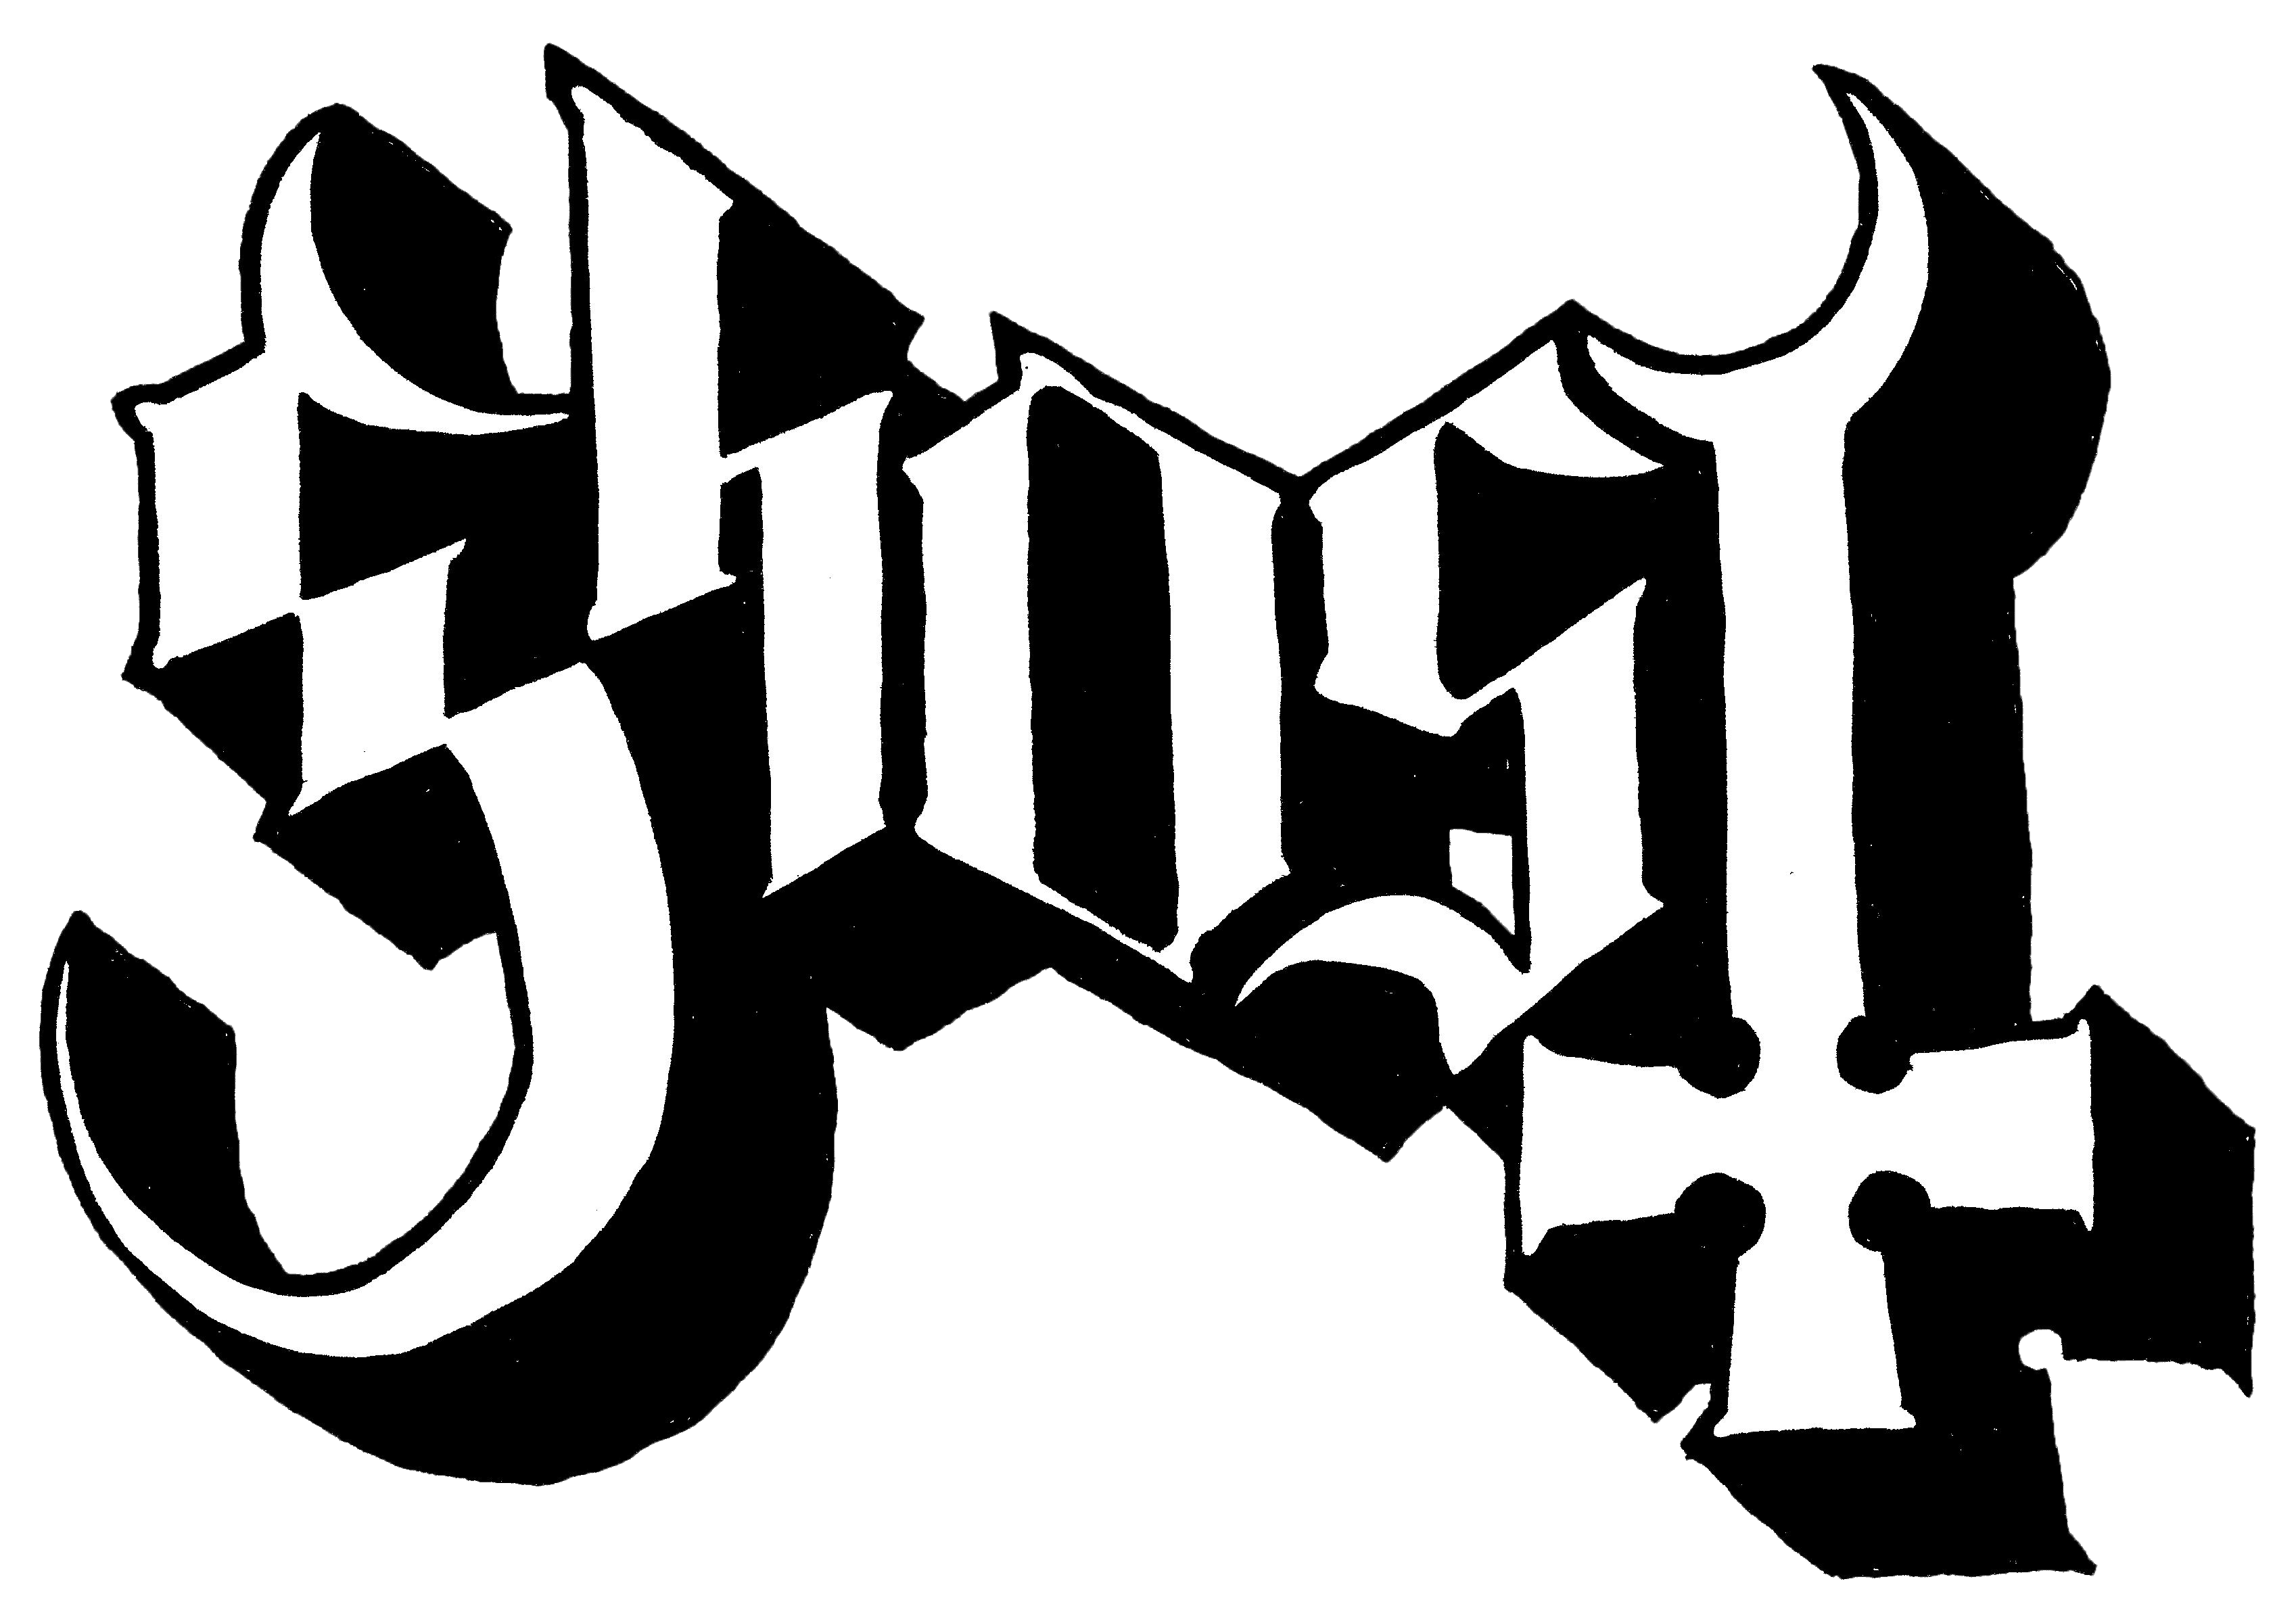 Ghost band logo png. M deano in america